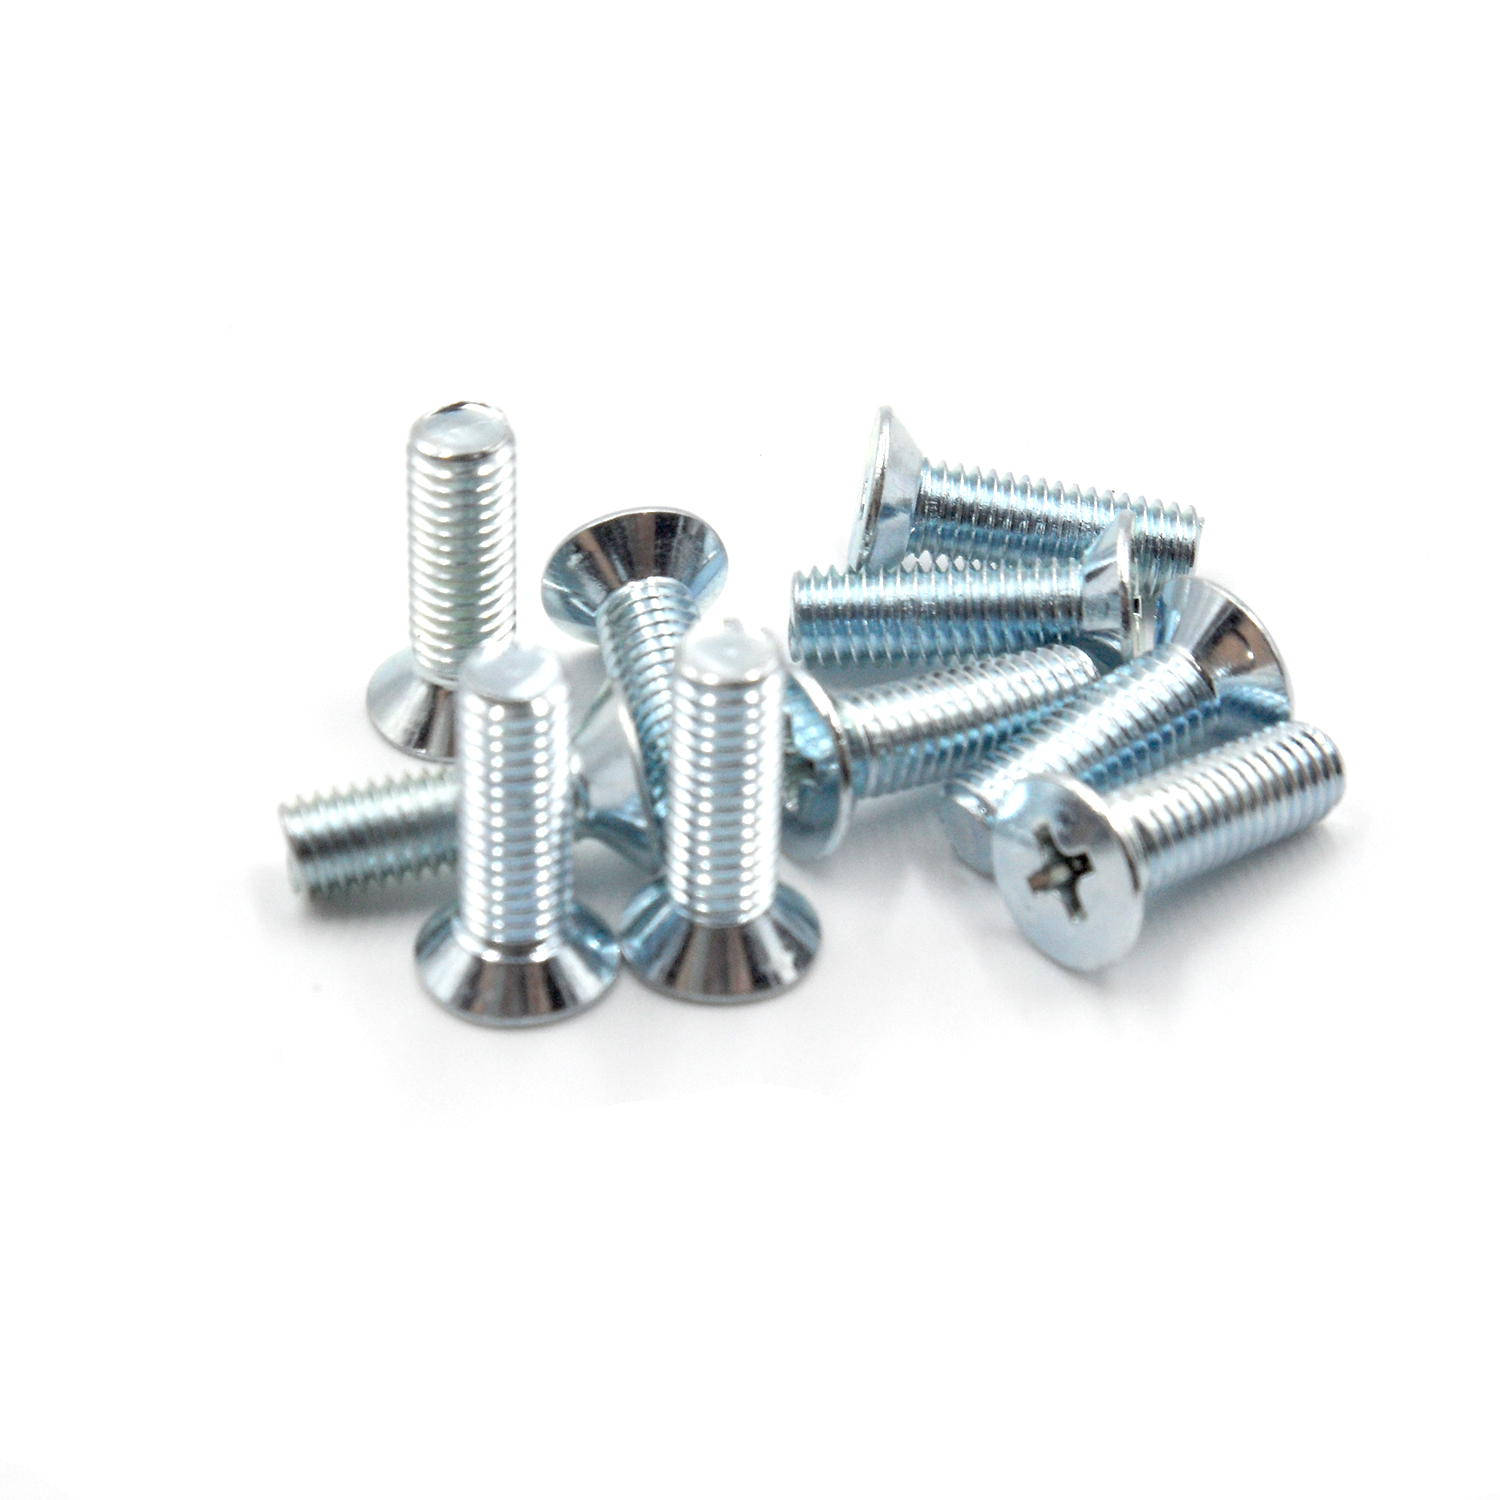 M5 mounting screws